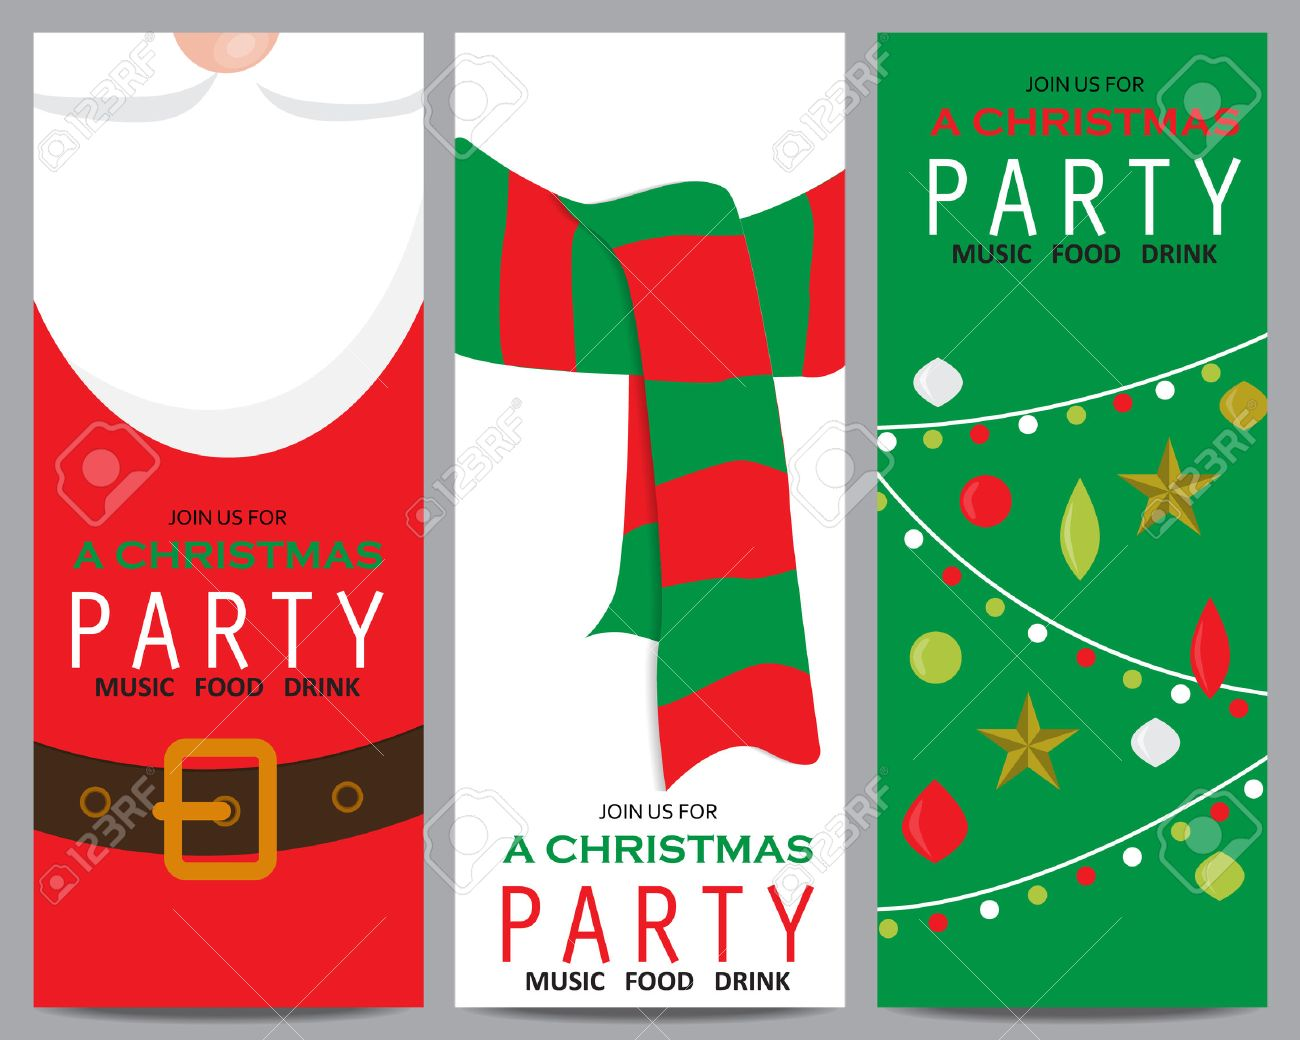 Christmas Party Ticket Template Free meeting agenda outline – Downloadable Christmas Party Invitations Templates Free